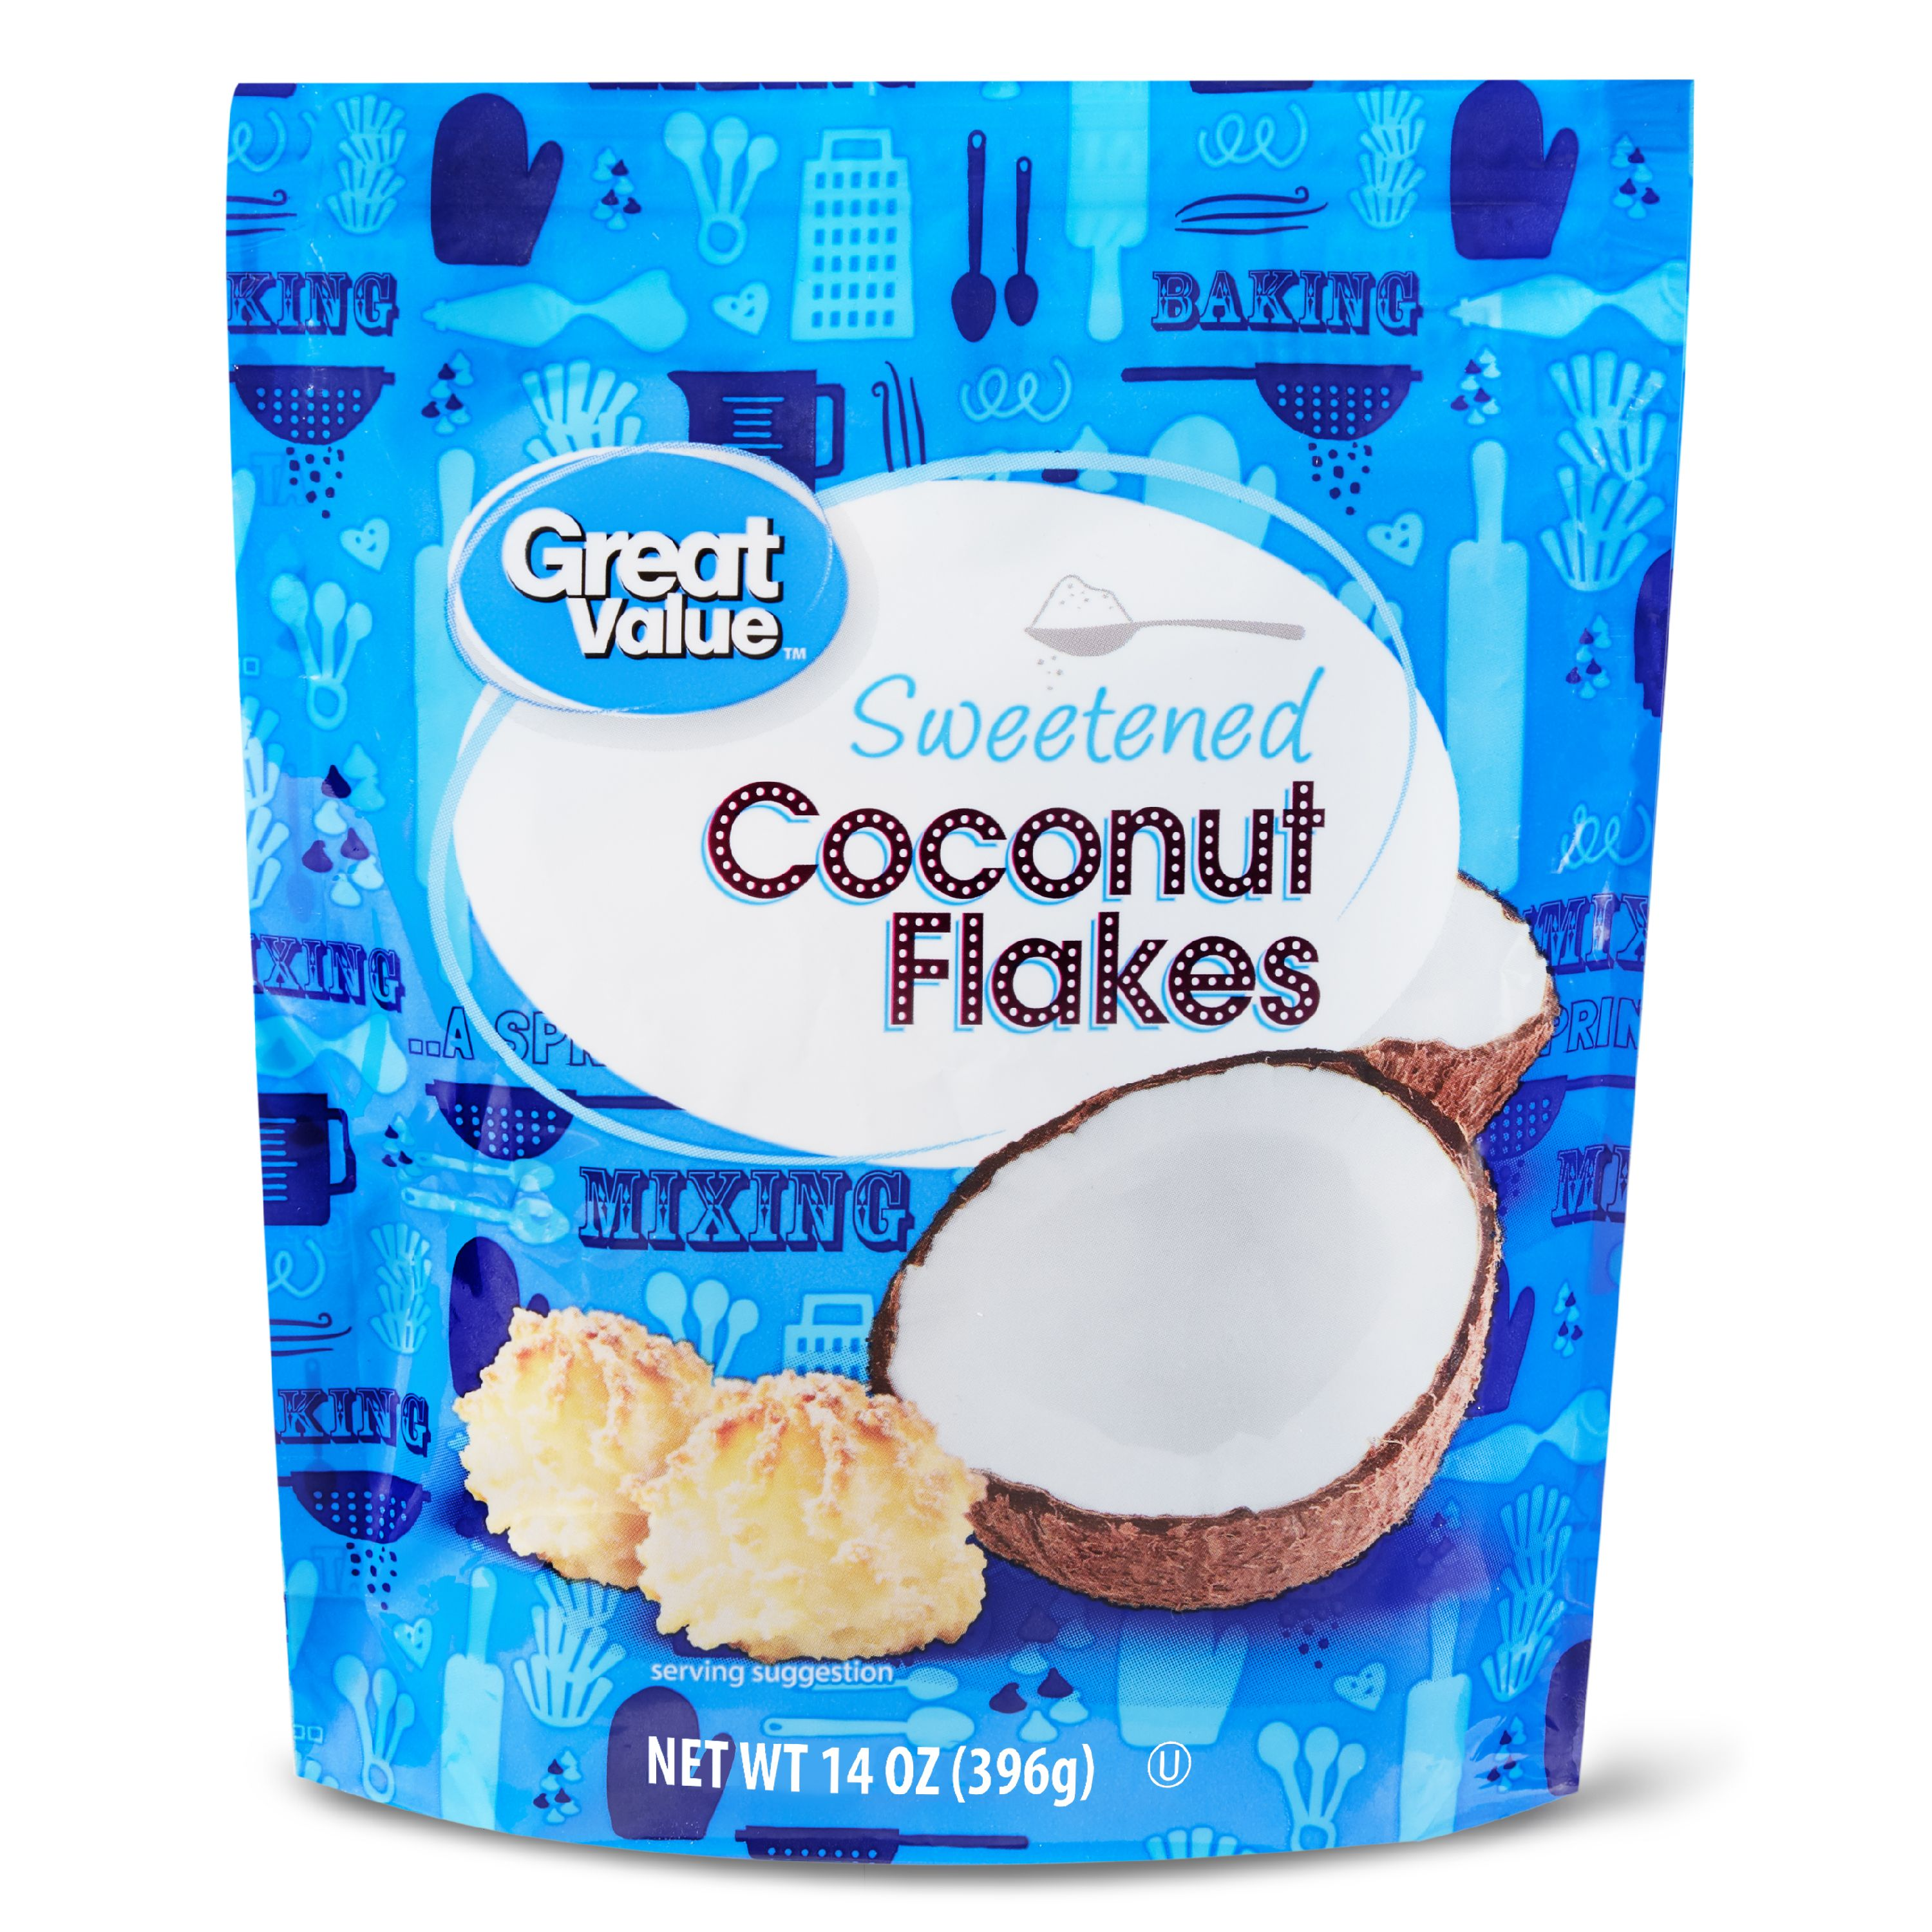 (4 Pack) Great Value Sweetened Coconut Flakes, 14 oz